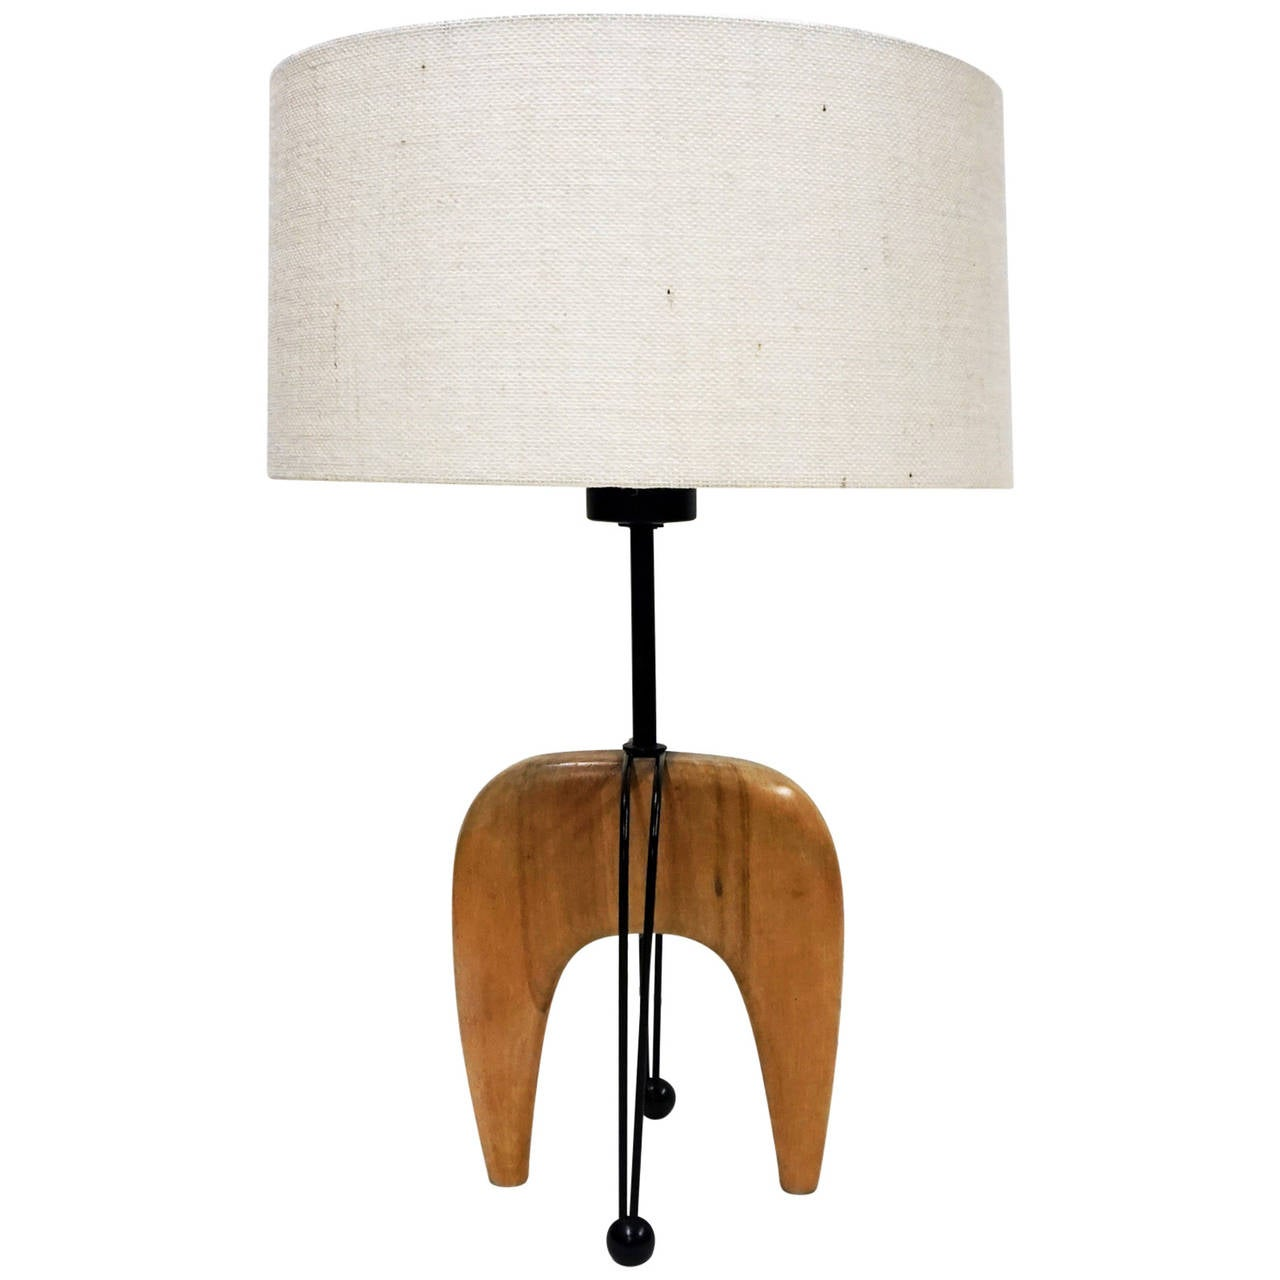 Sculptural s modernist wood and iron lamp at stdibs